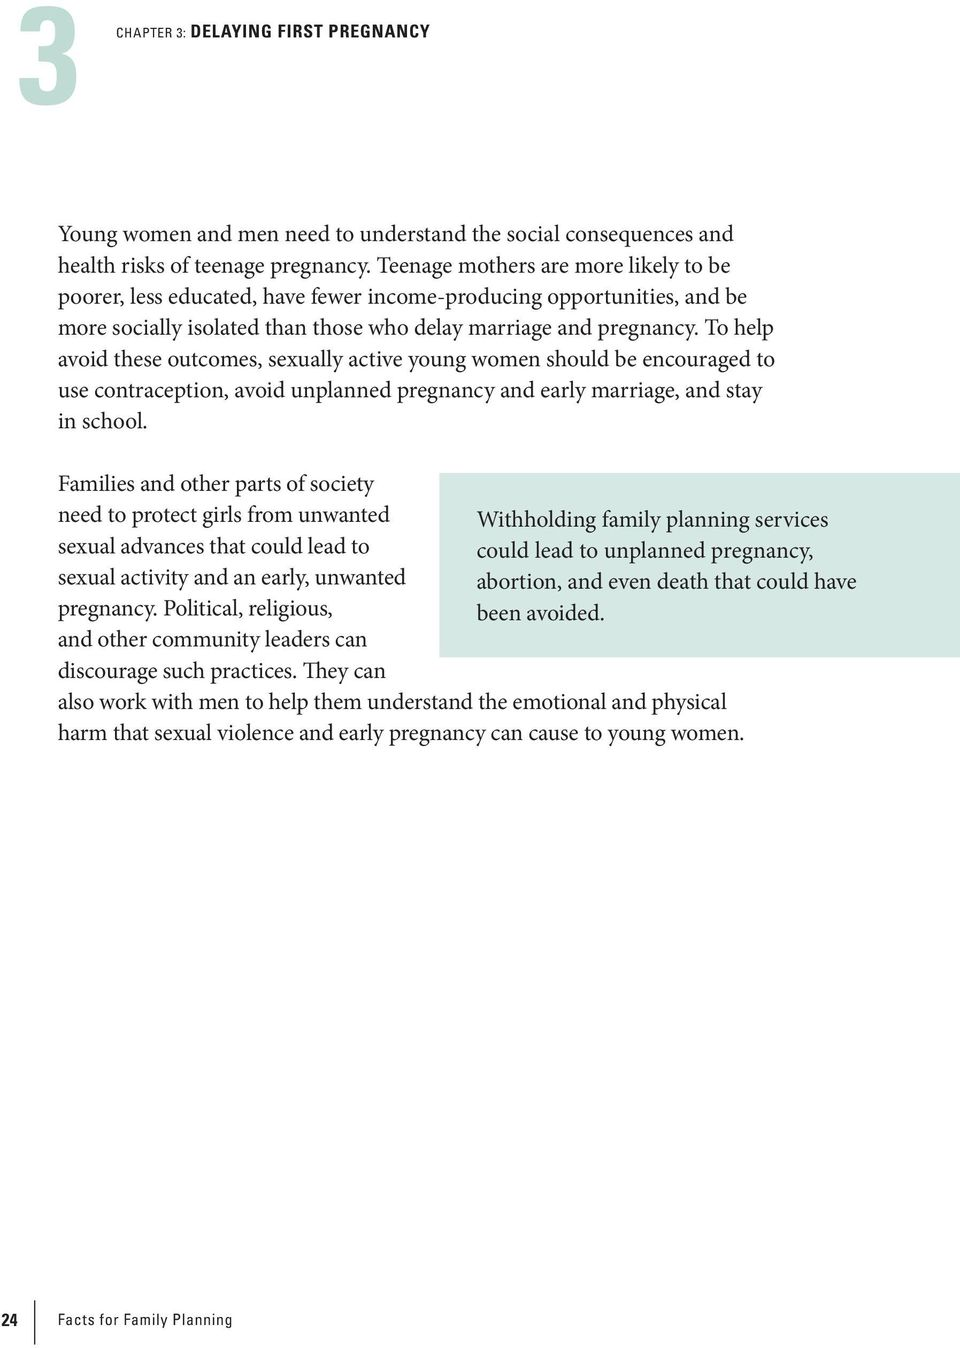 To help avoid these outcomes, sexually active young women should be encouraged to use contraception, avoid unplanned pregnancy and early marriage, and stay in school.